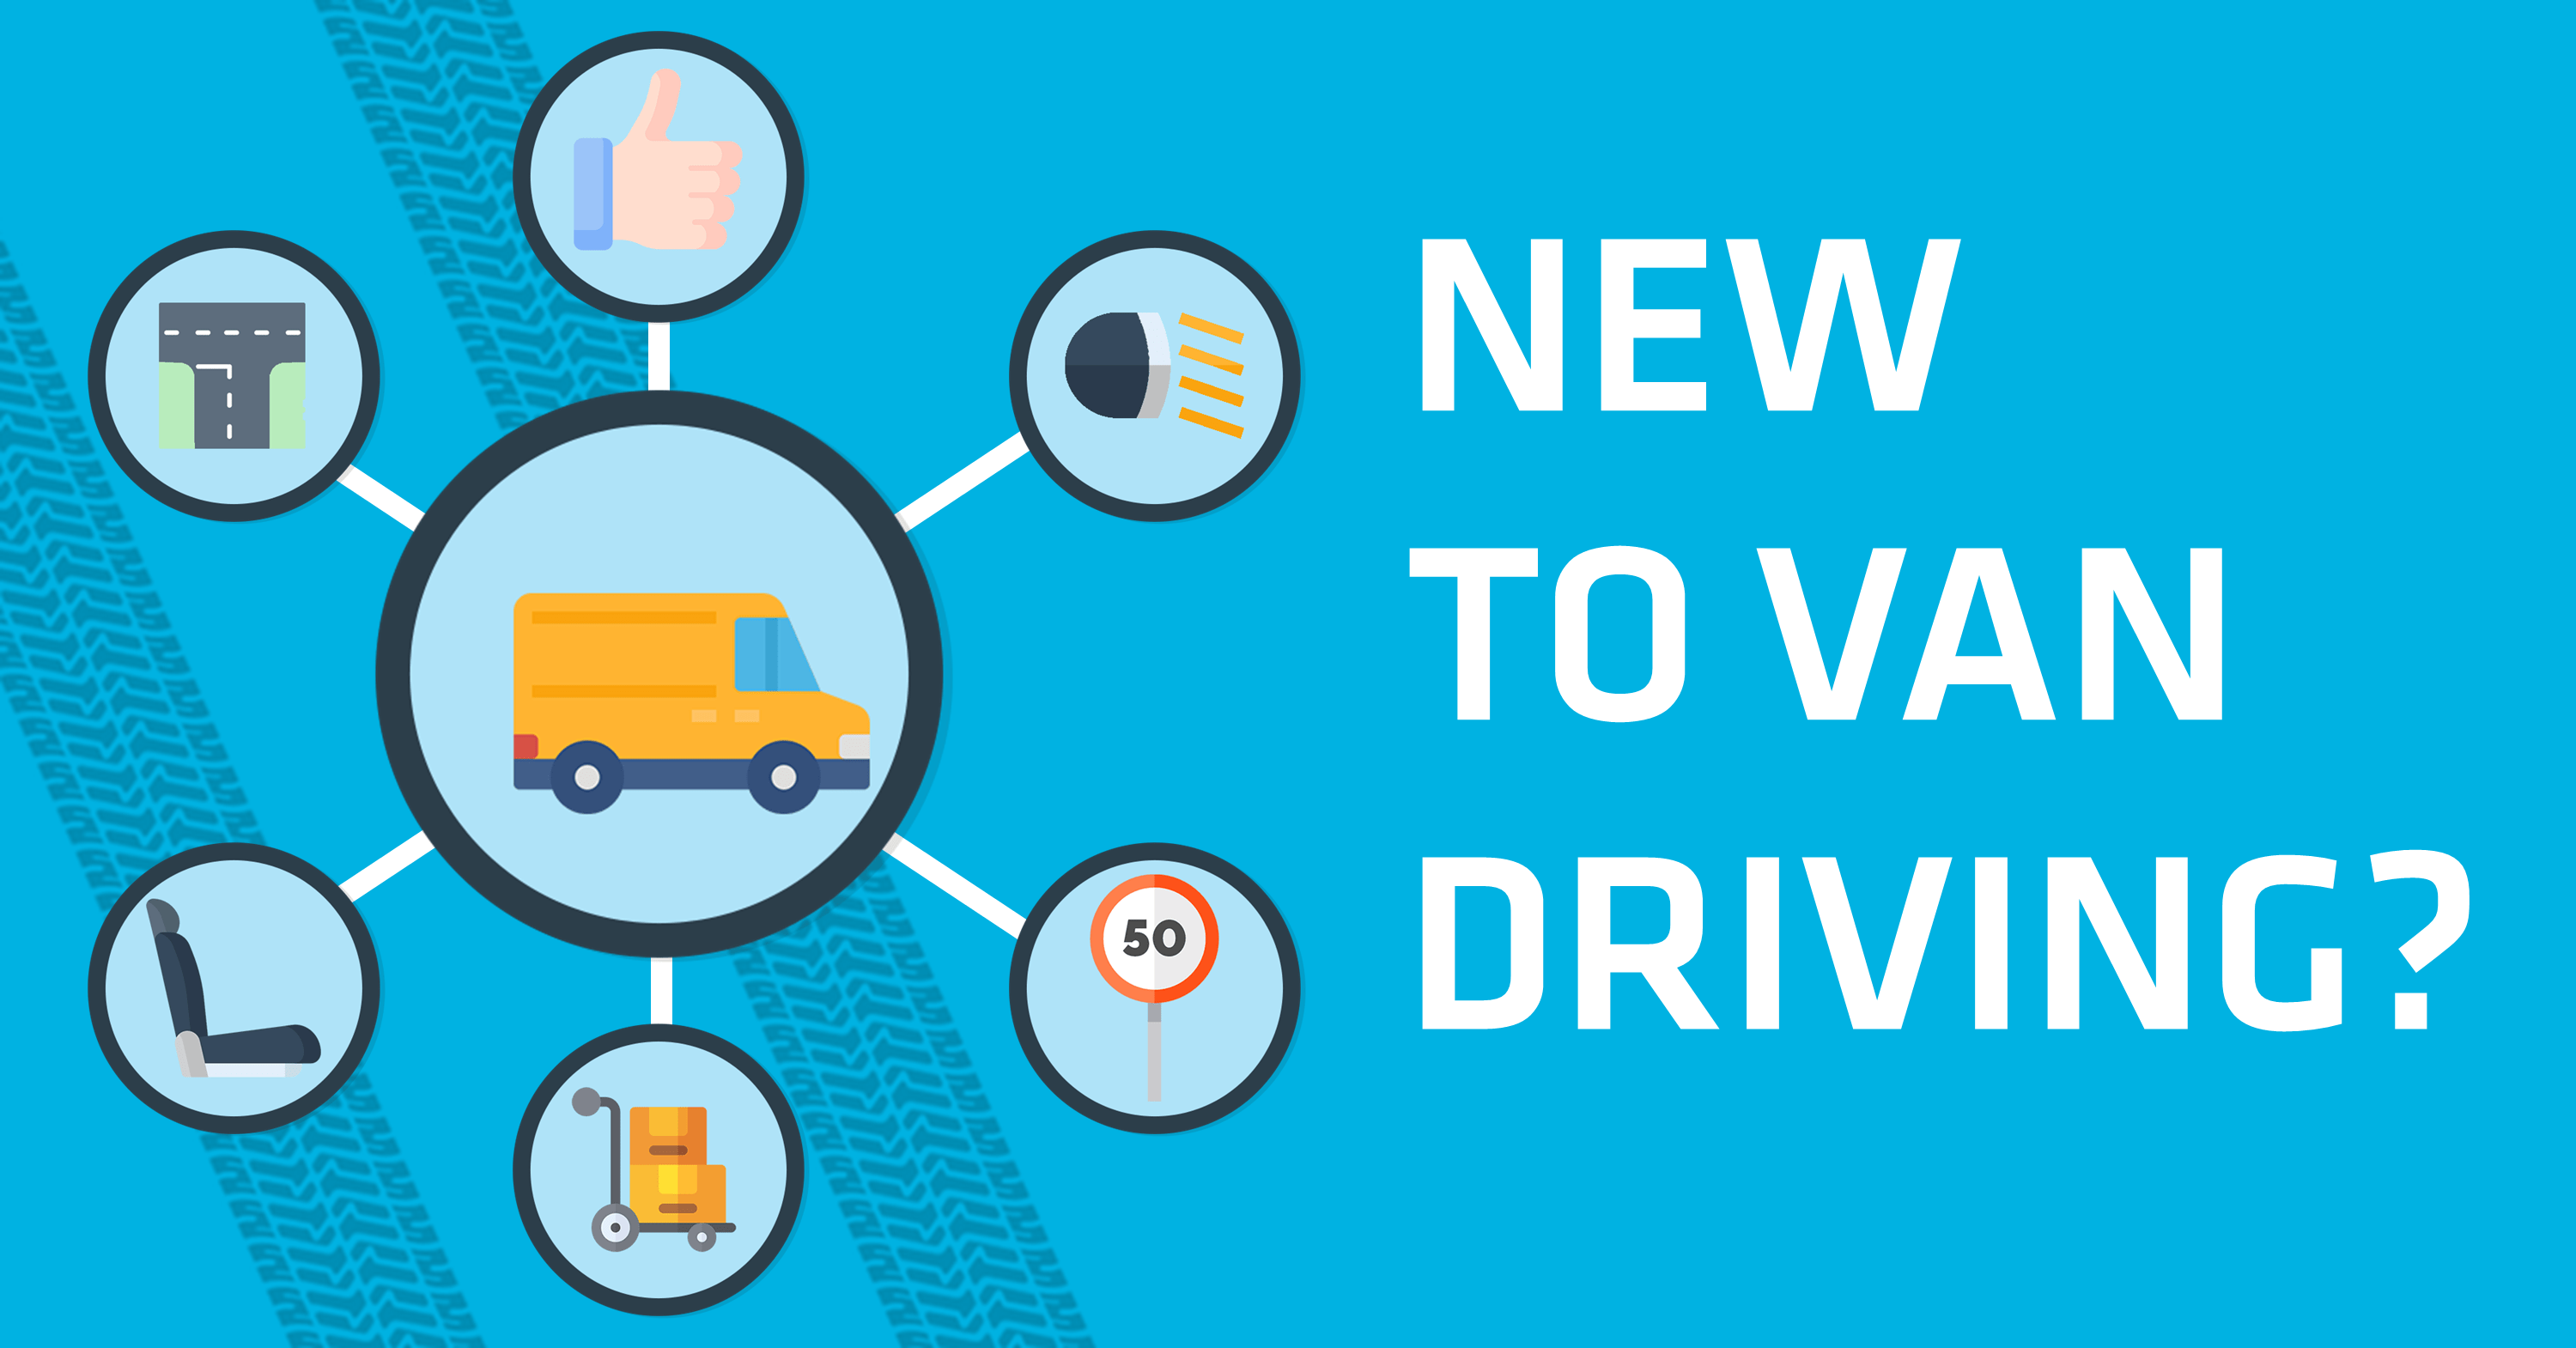 New to van driving? Here are 7 of our top tips